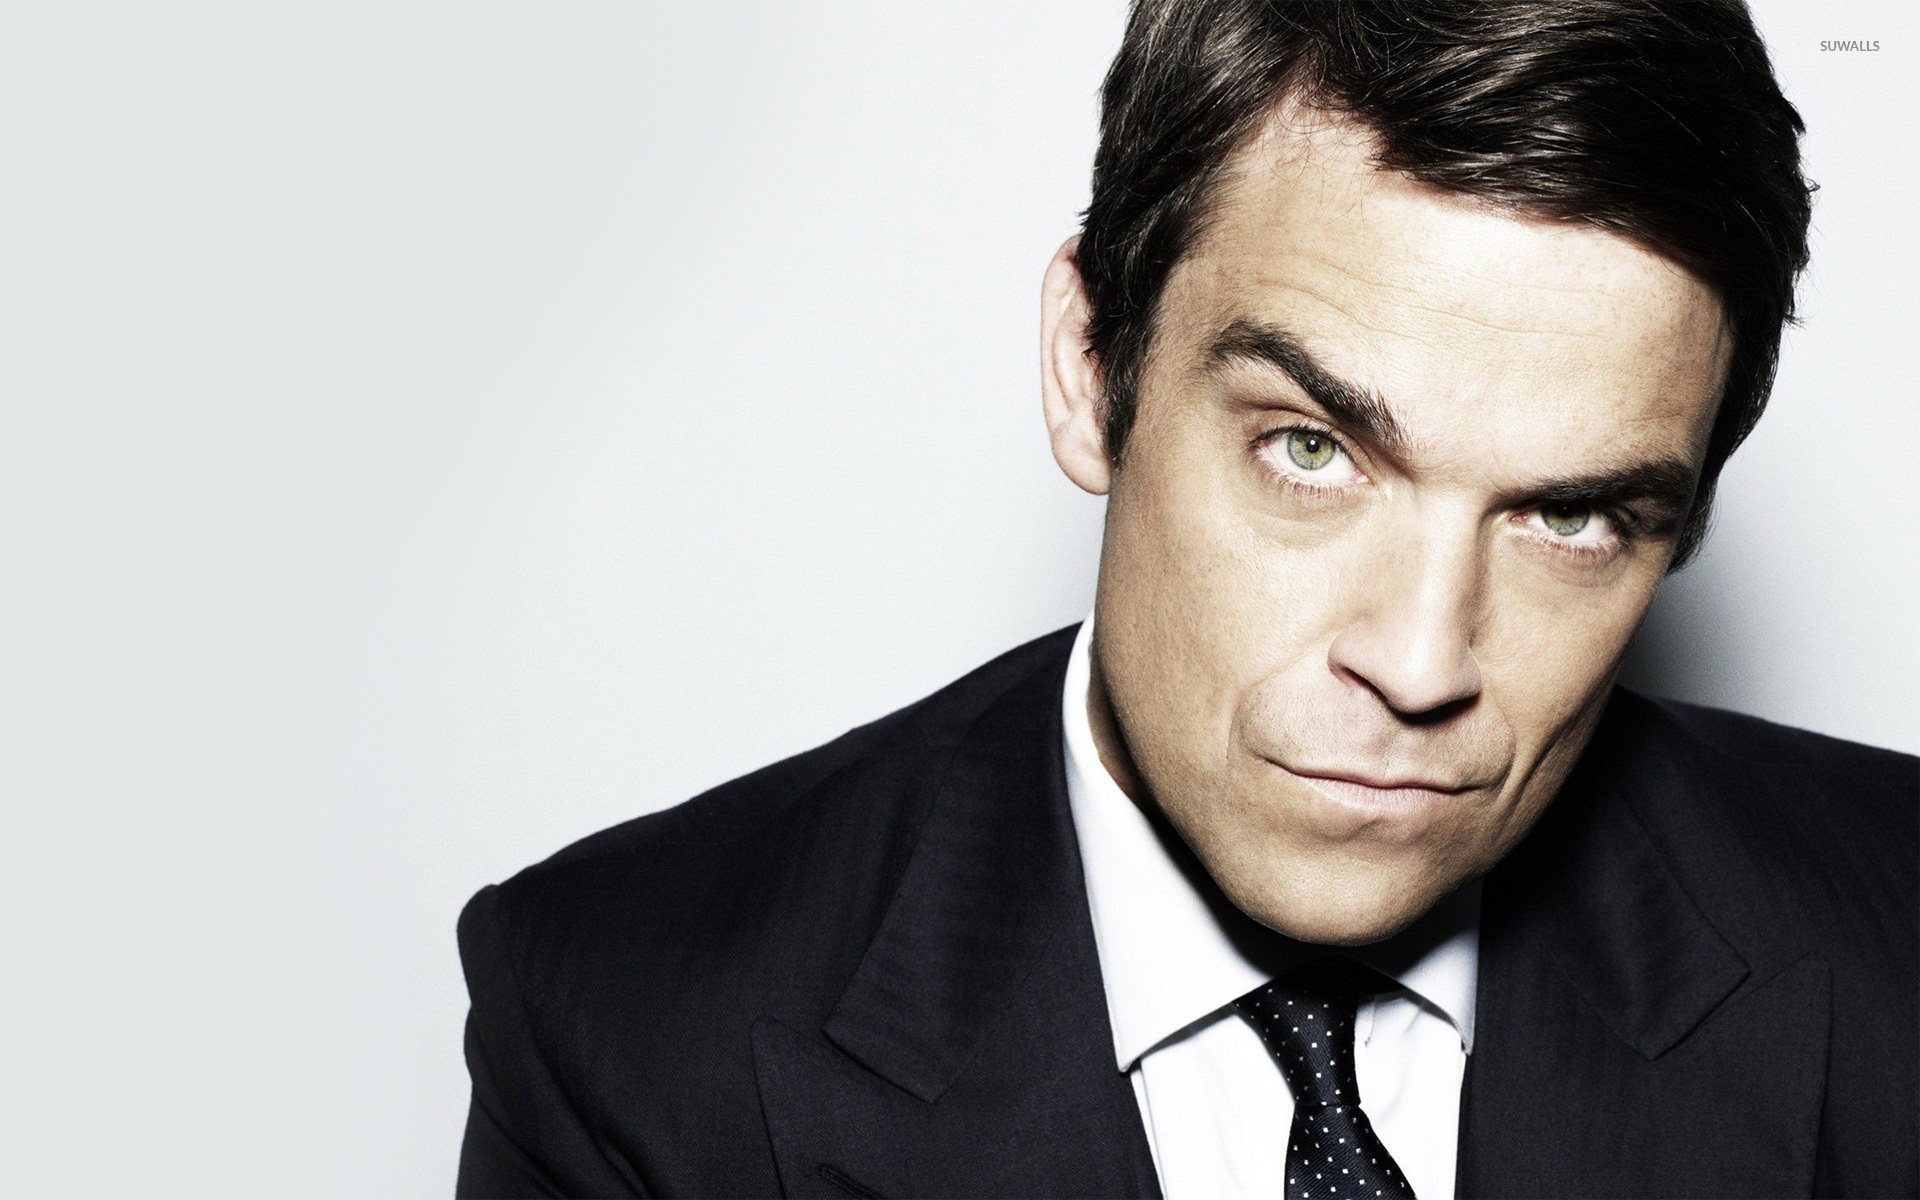 Robbie Williams wallpaper   Male celebrity wallpapers   8139 1920x1200